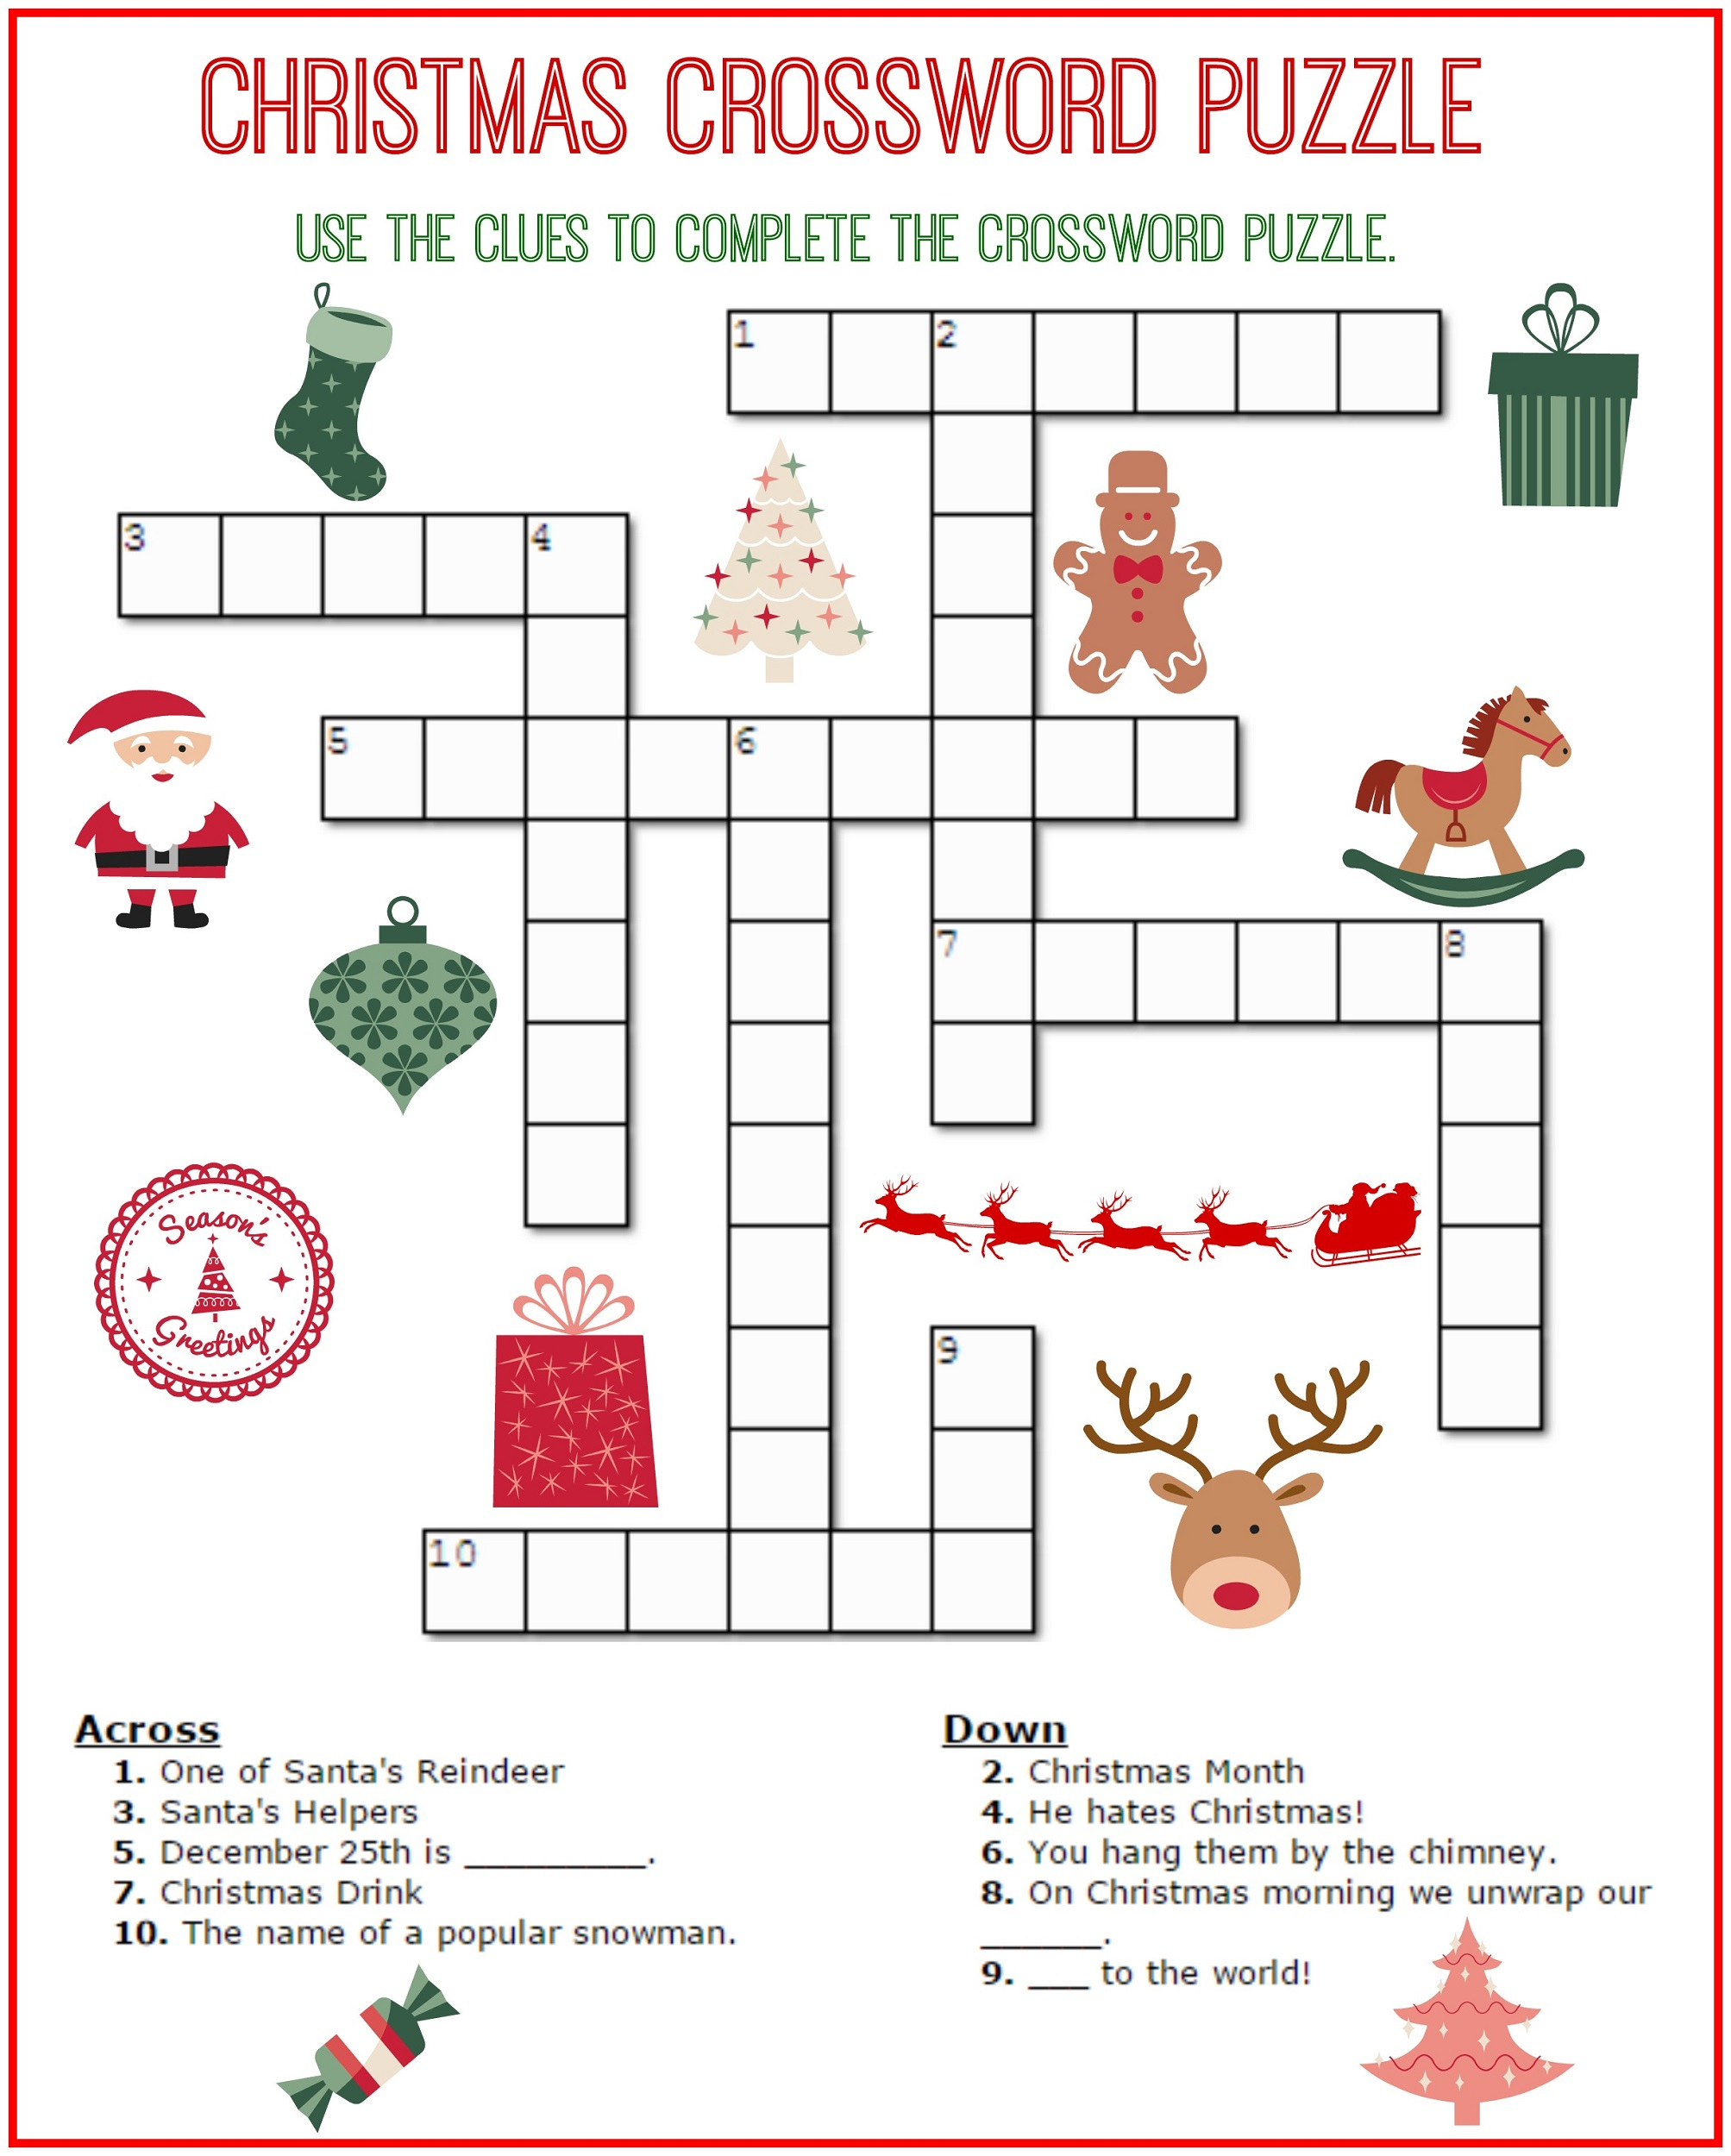 Crossword Puzzle Kids Printable 2017 | Kiddo Shelter - Free Easy - Printable Crossword Puzzles For Students